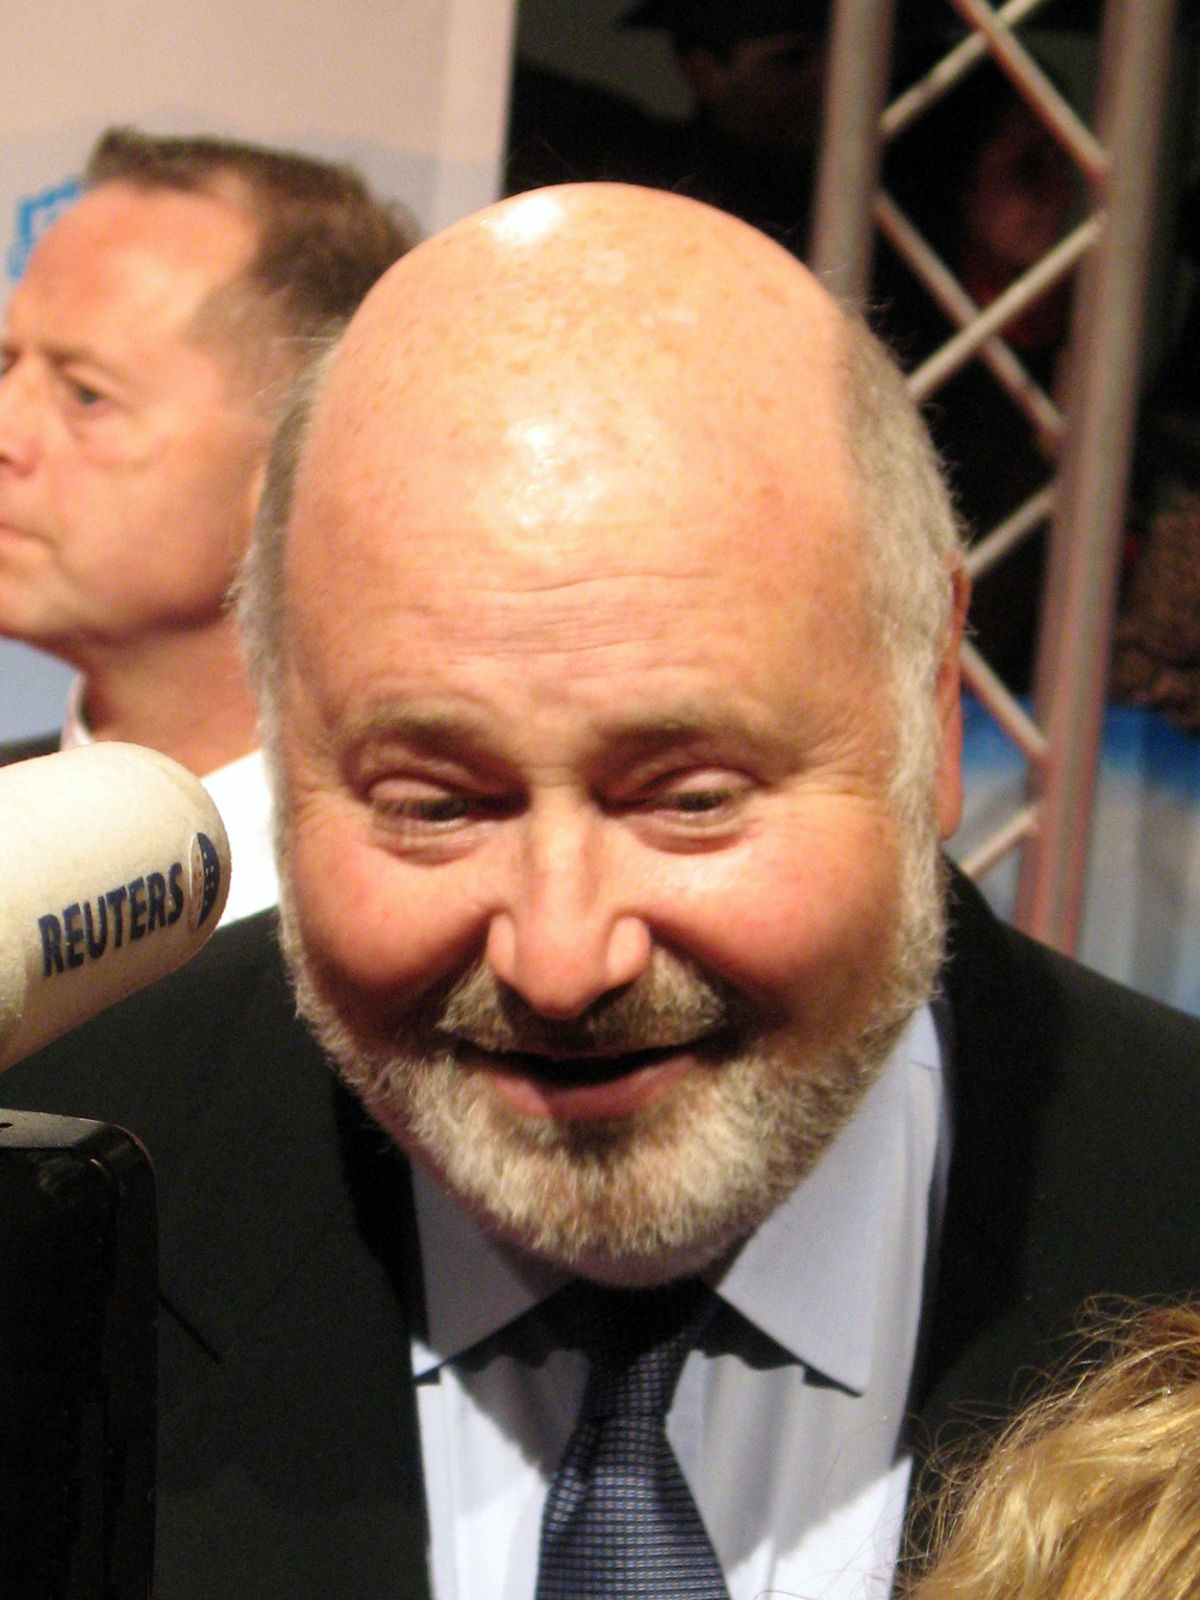 rob reiner butterrob reiner wiki, rob reiner tv tropes, rob reiner wolf of wall street, rob reiner butter, rob reiner film, rob reiner, rob reiner movies, rob reiner imdb, rob reiner quit smoking, rob reiner movies list, rob reiner stand by me, rob reiner spinal tap, rob reiner young, rob reiner lbj, rob reiner anvil, rob reiner being charlie, rob reiner net worth, rob reiner all in the family, rob reiner's mock rock band, rob reiner biography